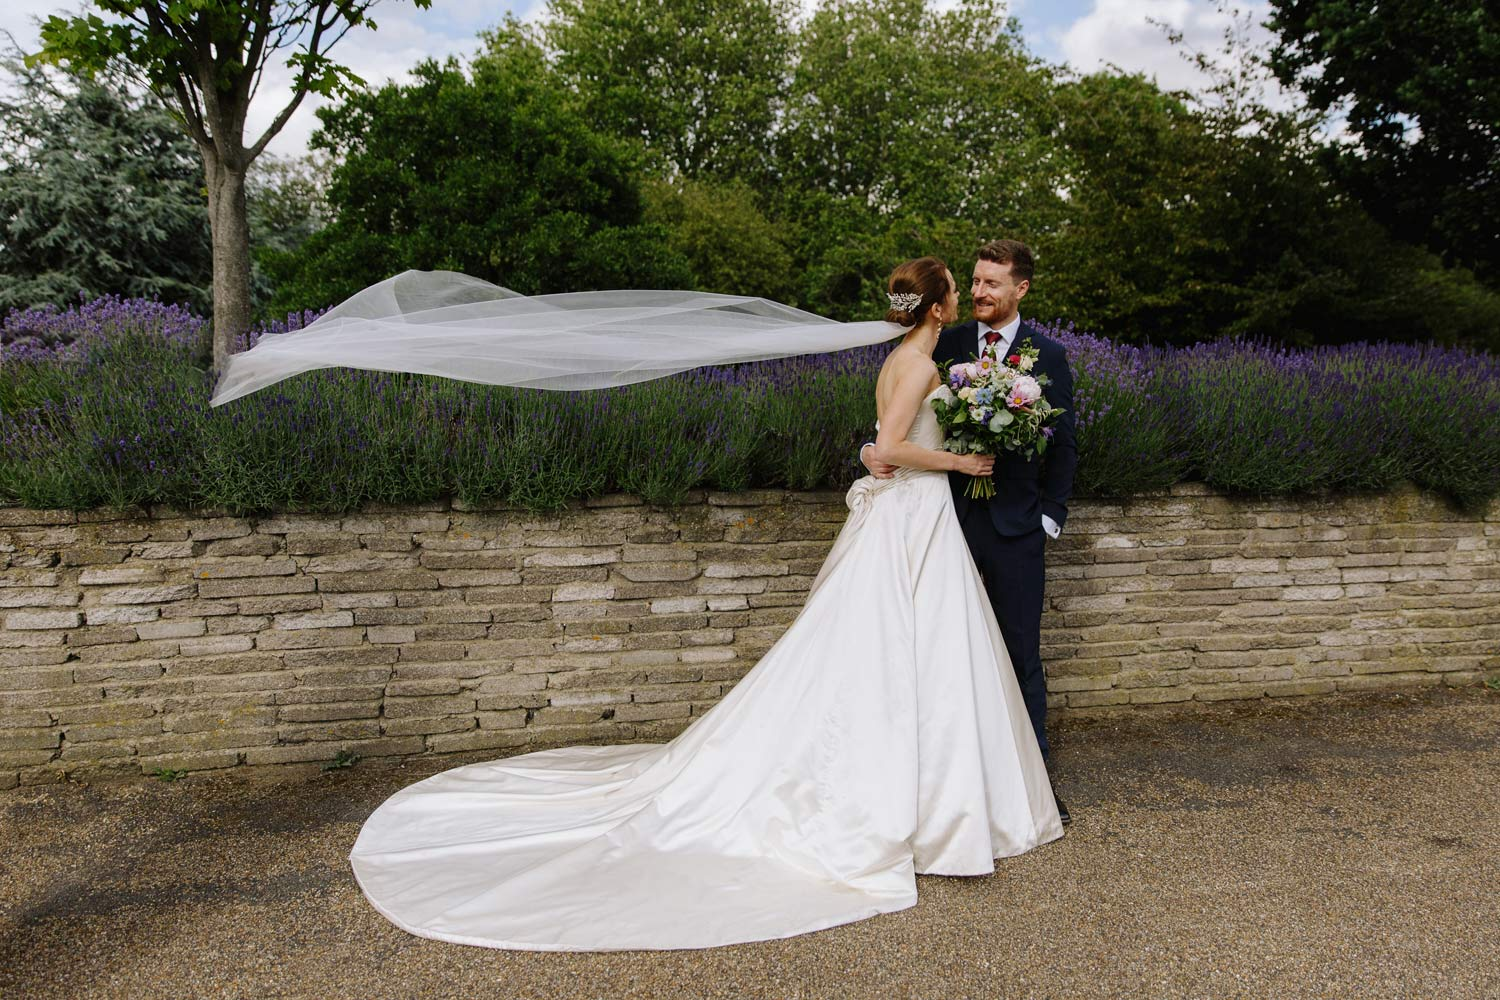 A bride and groom pose as the bride's veil blows in the wind.